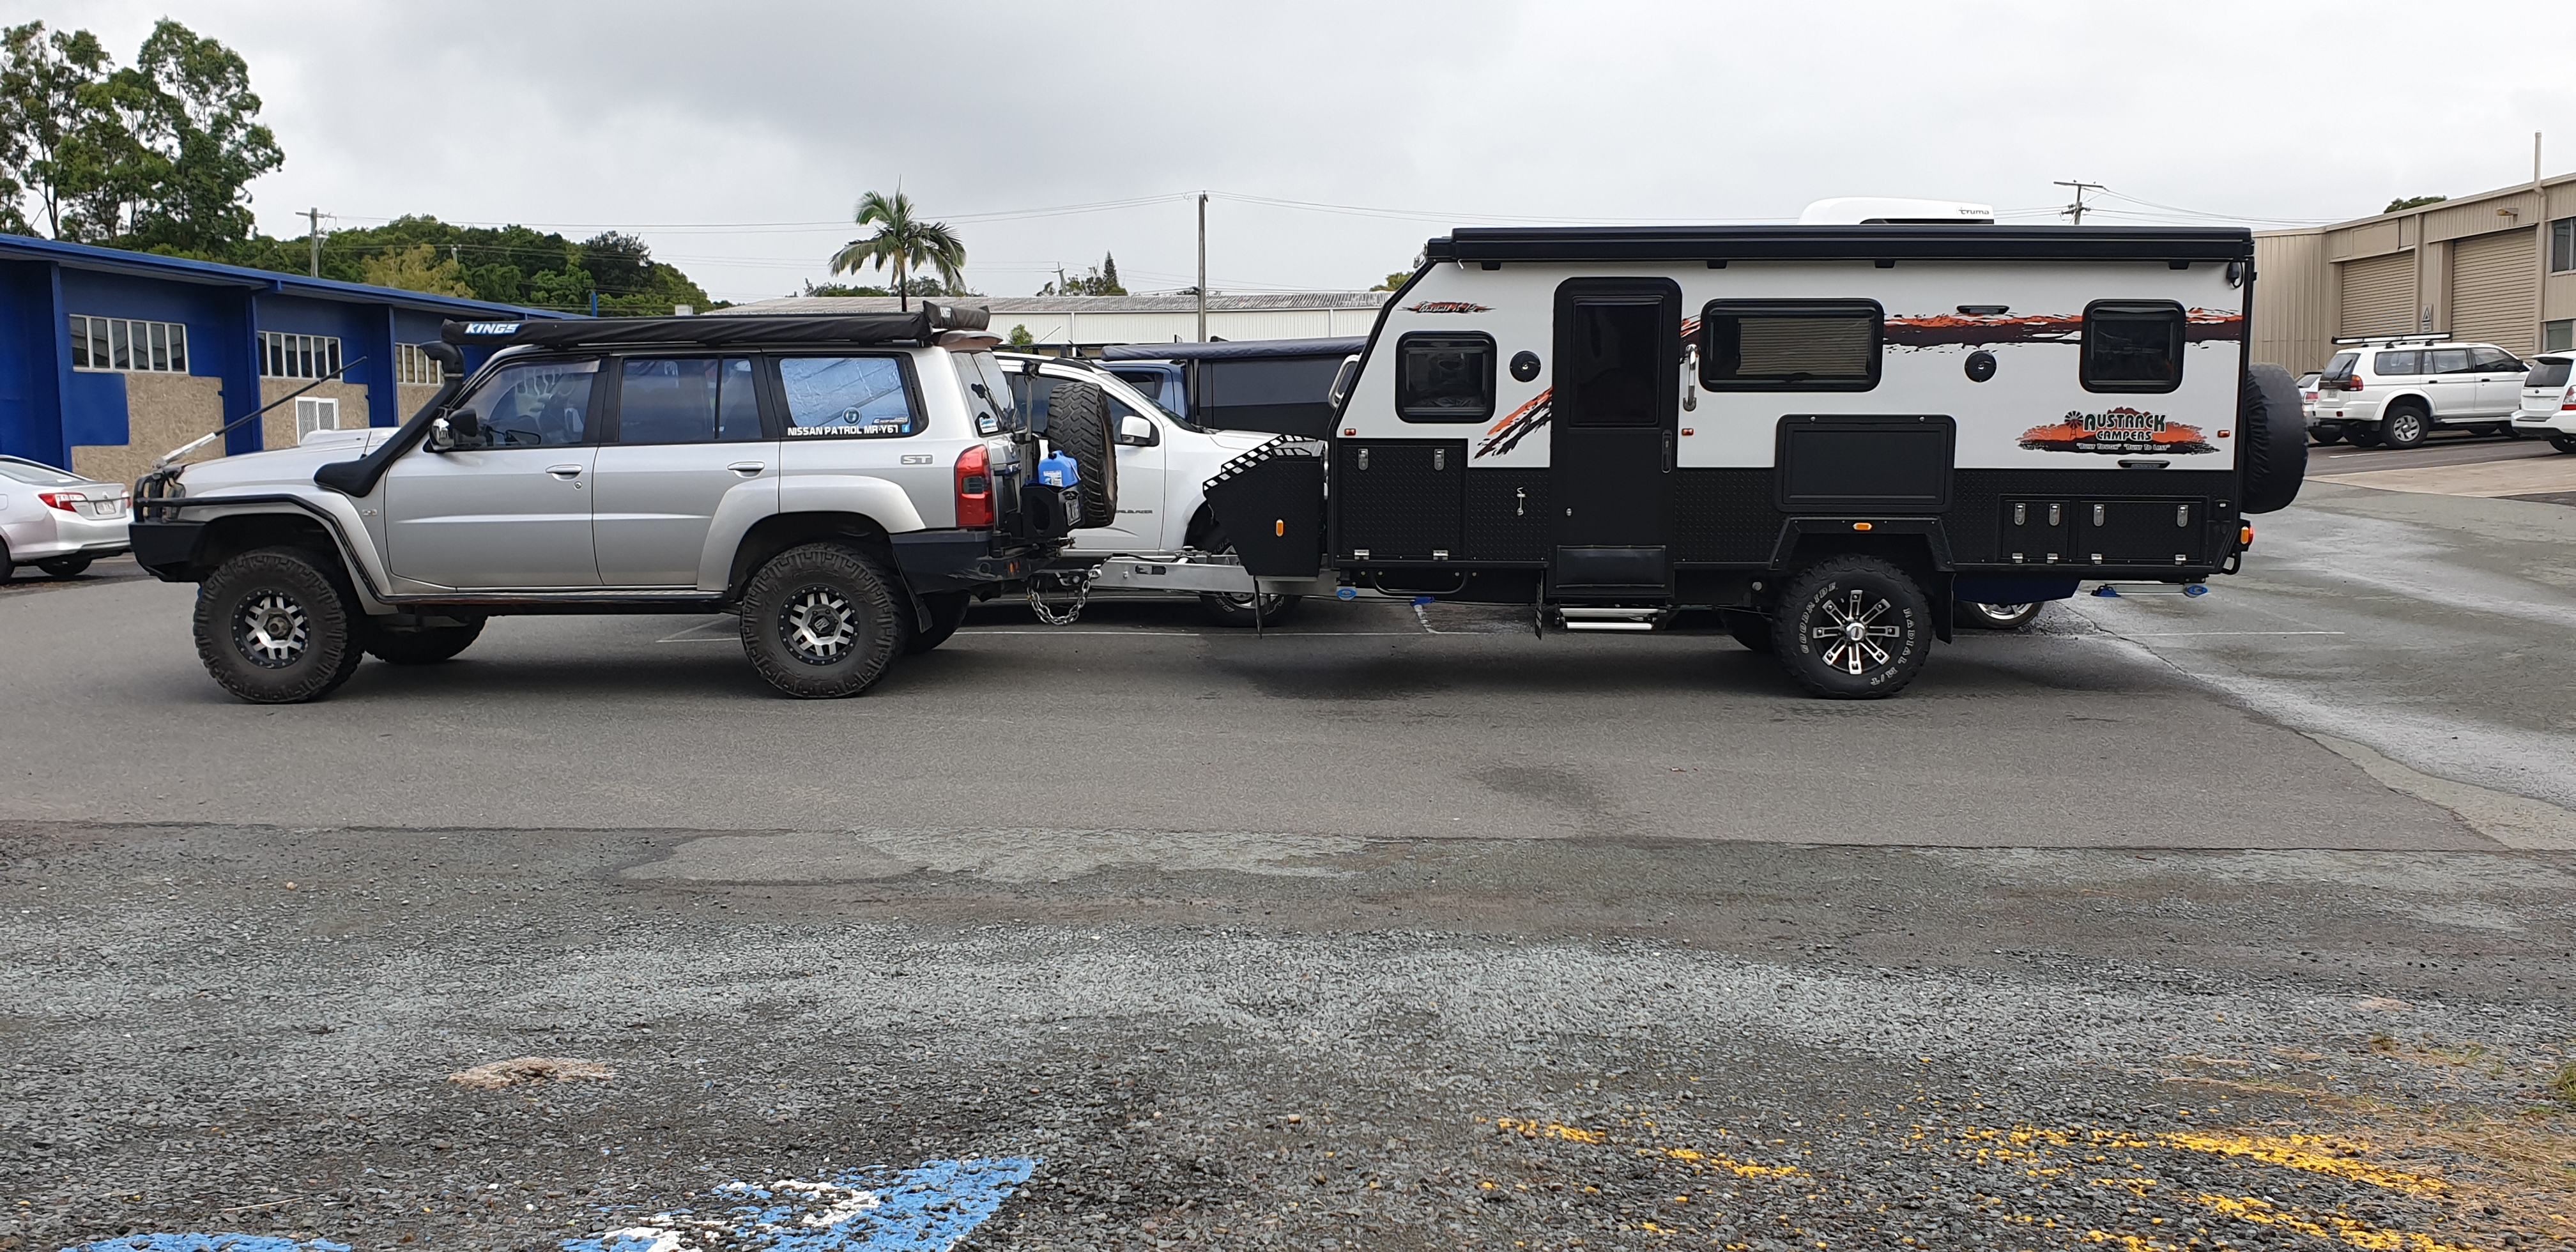 Lovells camper suspensions Austrack tanami x15, power curve performance, towing